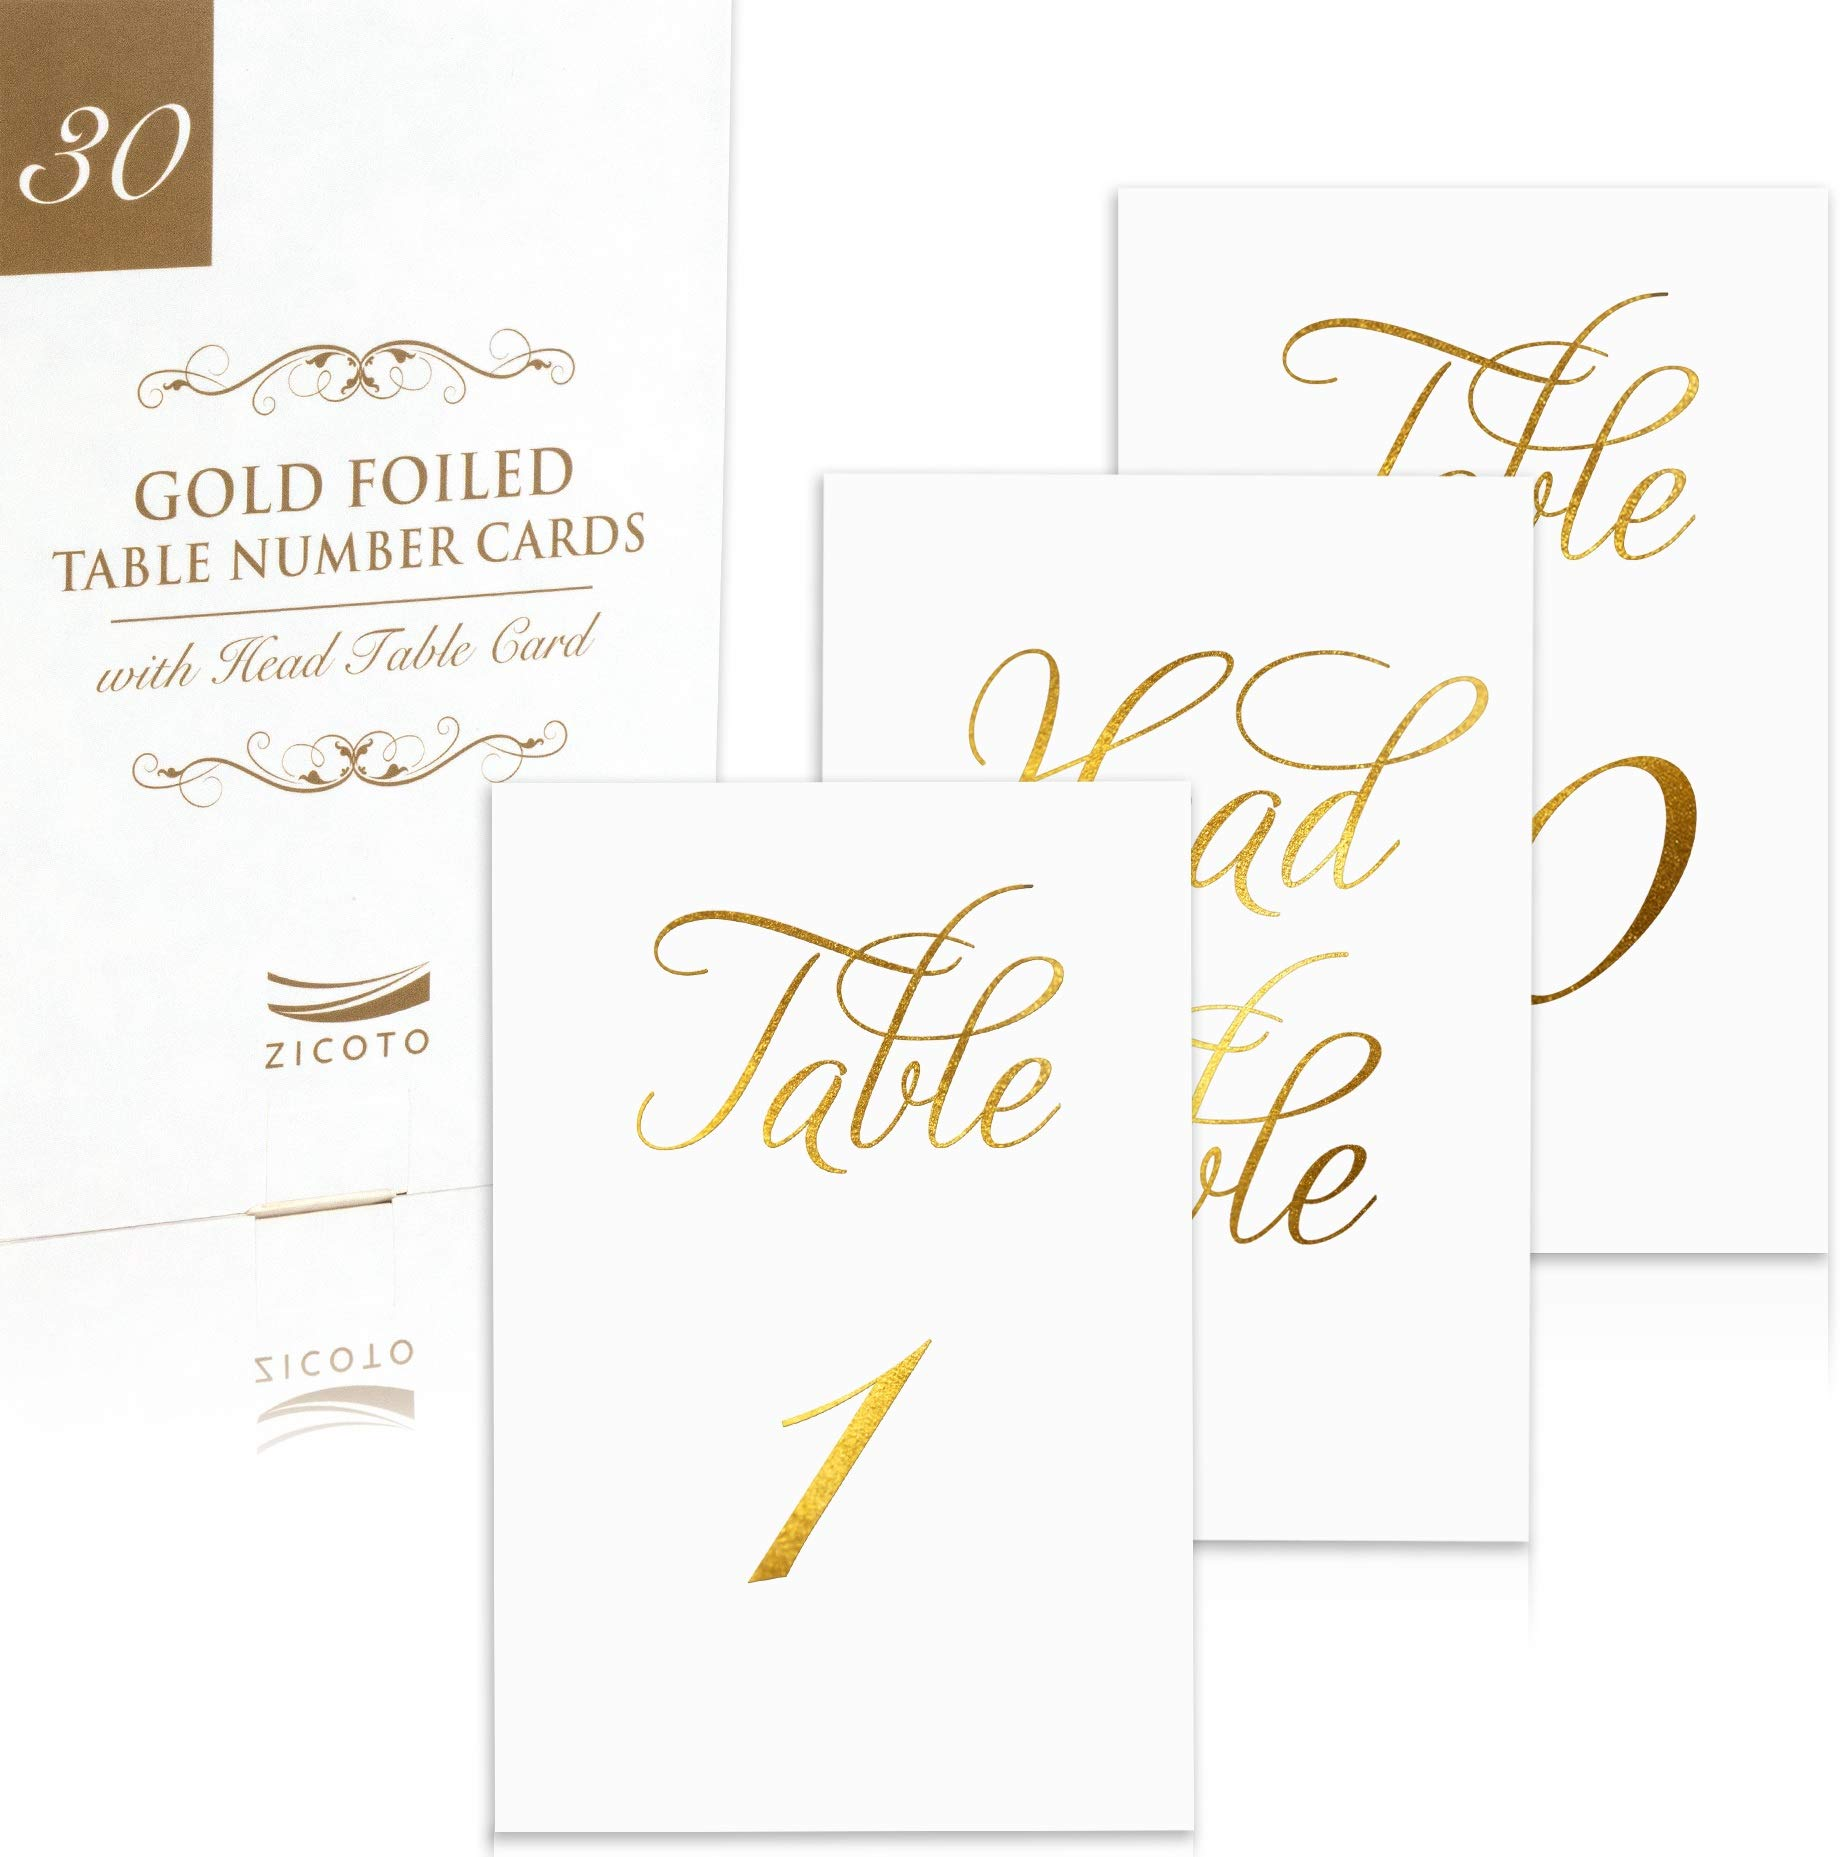 Classy Gold Wedding Table Numbers in Double Sided Gold Foil Lettering with Head Table Card - 4 x 6 inches and Numbered 1-30 - Perfect for Weddings and Events by ZICOTO